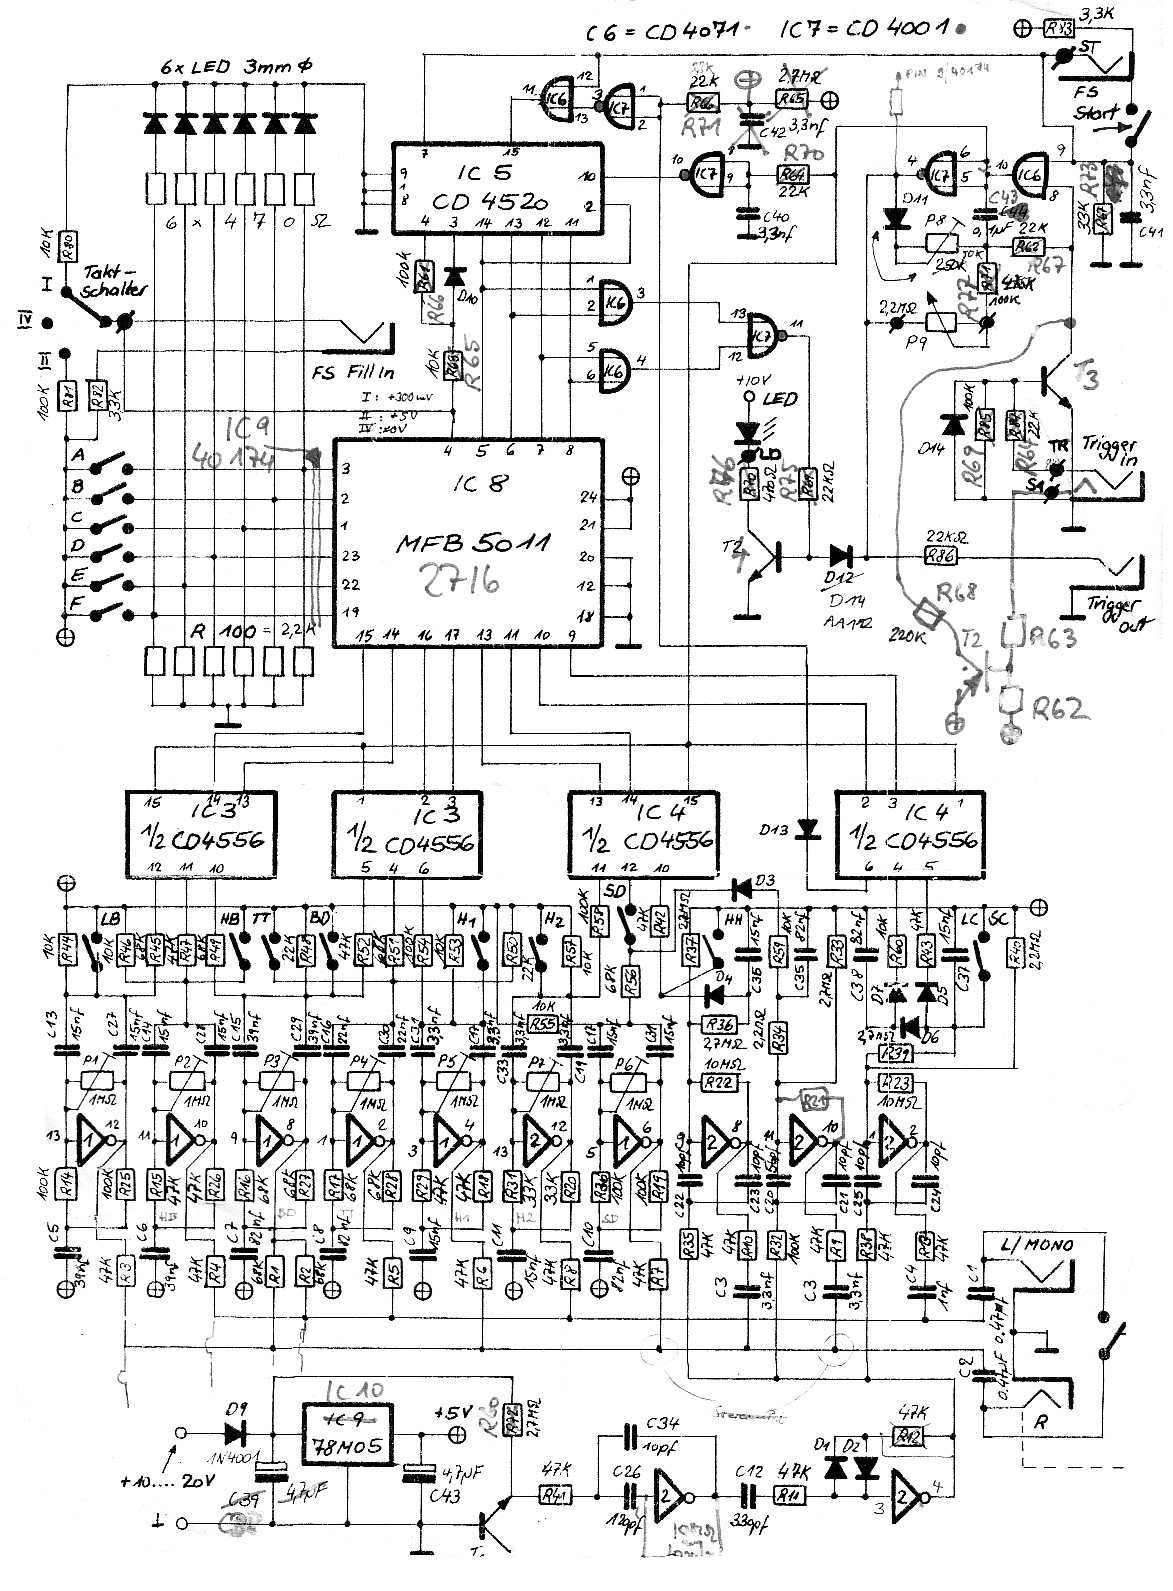 MFB 501_SCHEMATICS synthesizer service manuals free download ra-4000 installation manual at crackthecode.co